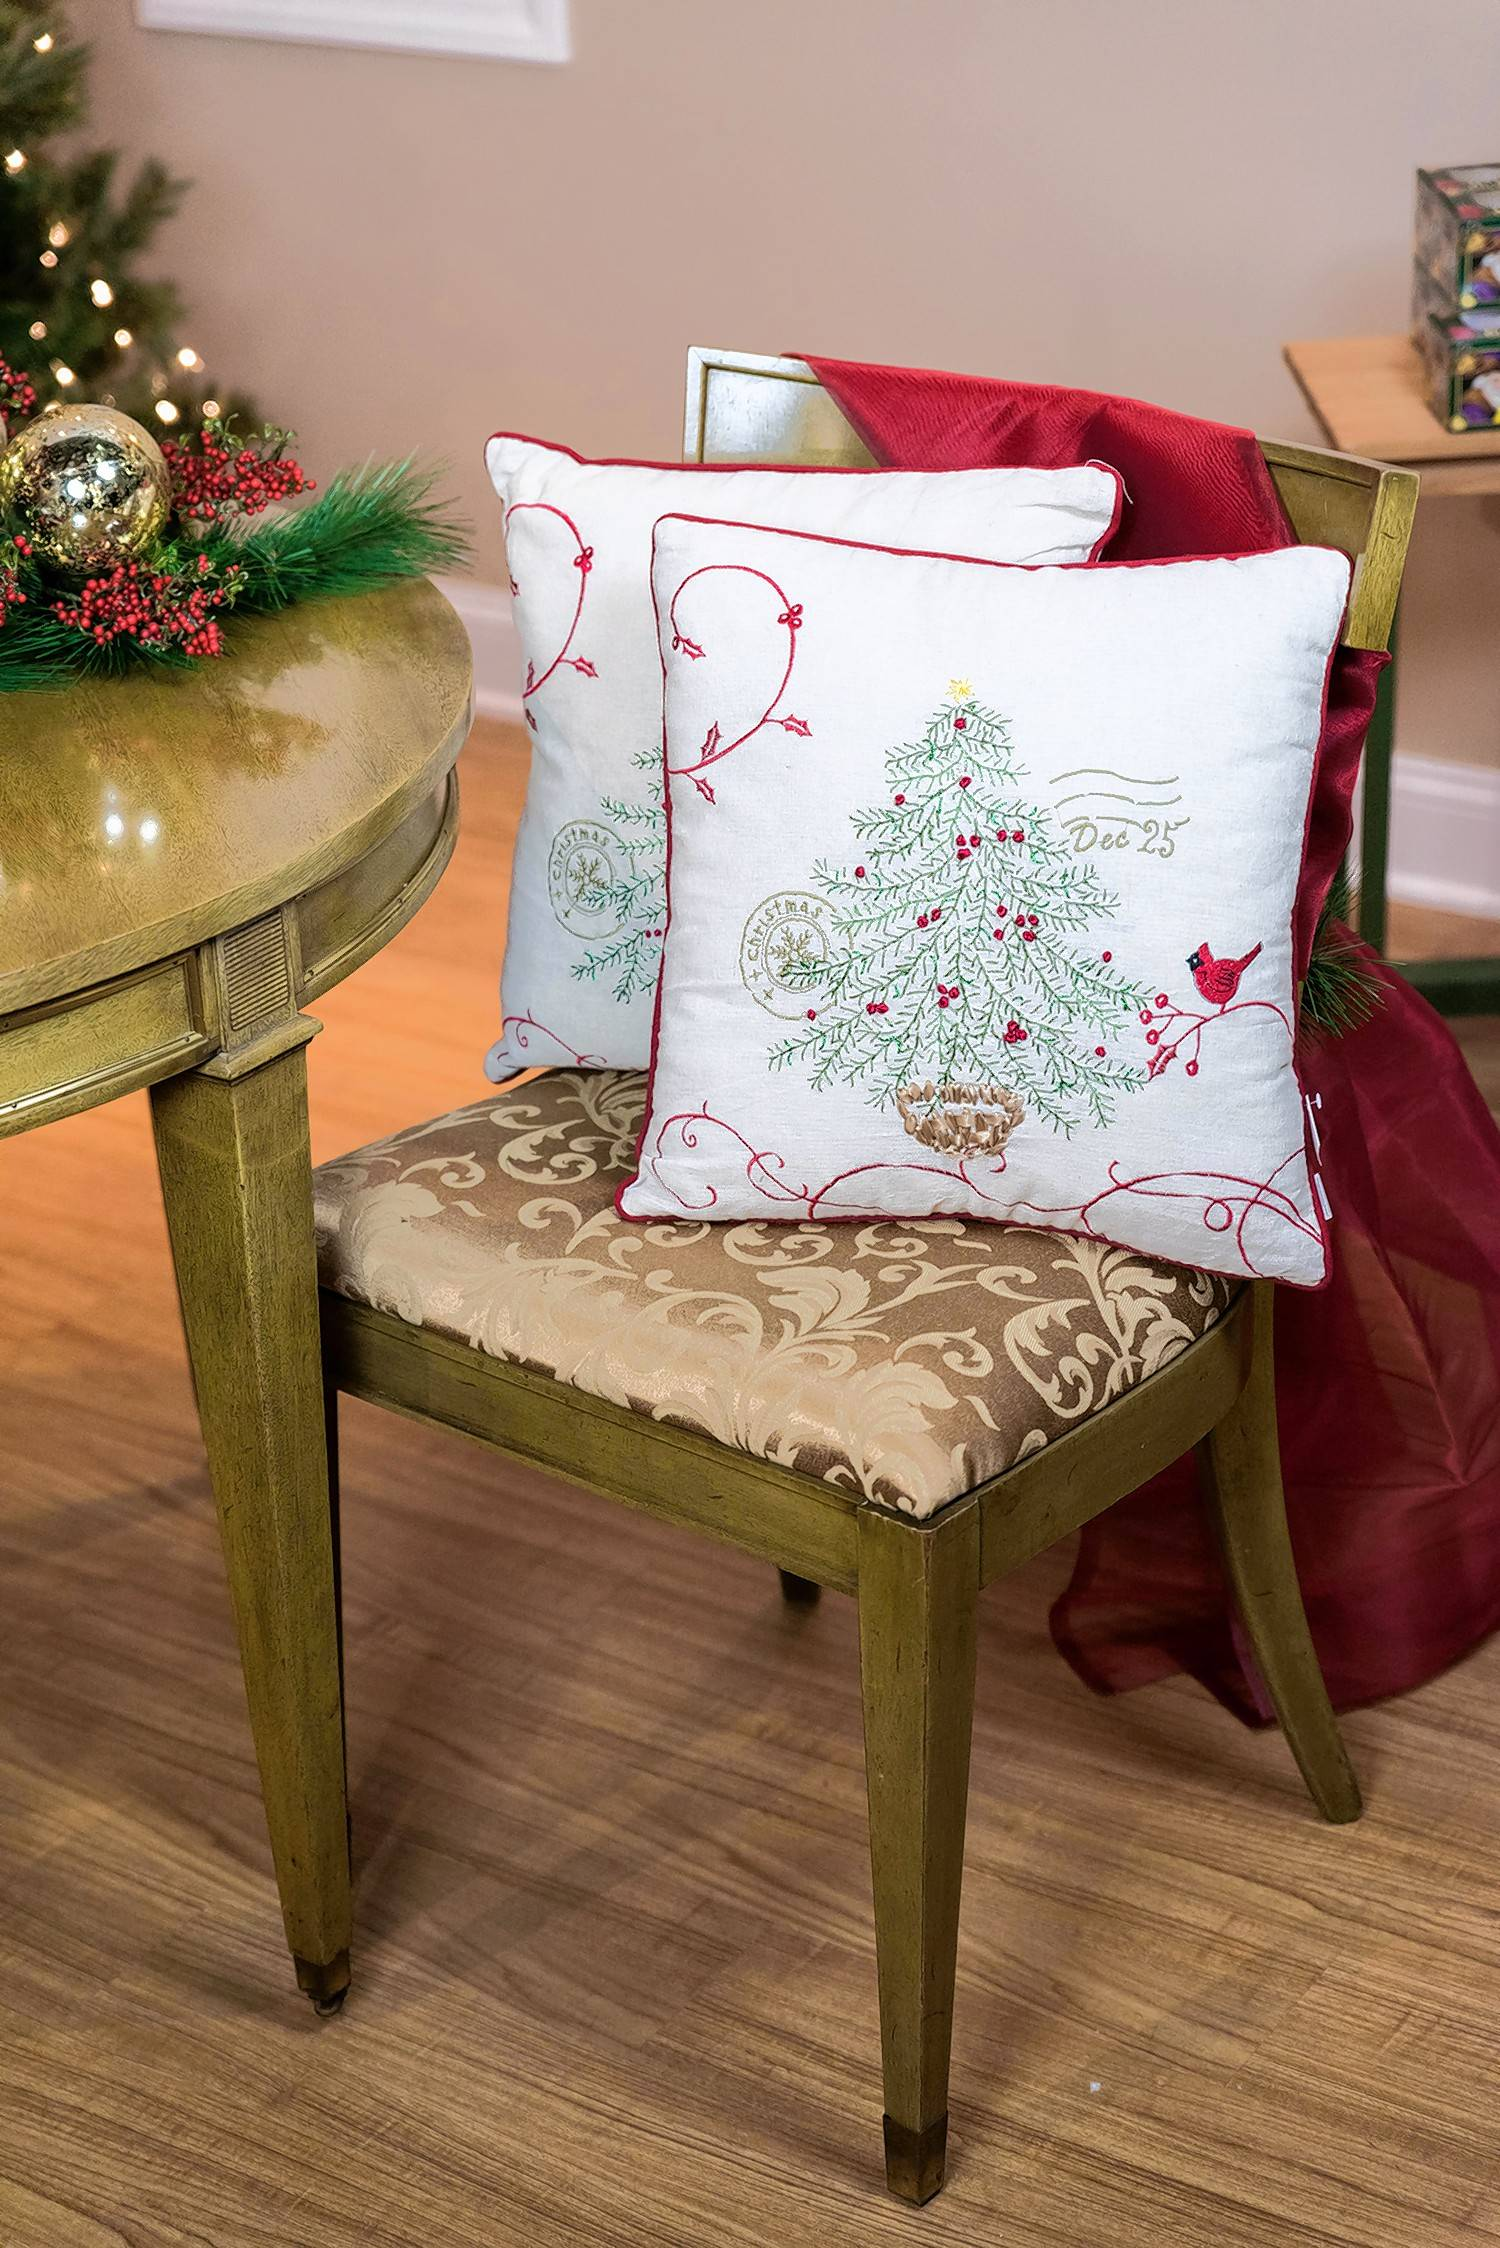 Holiday pillows spruce up dining chairs.